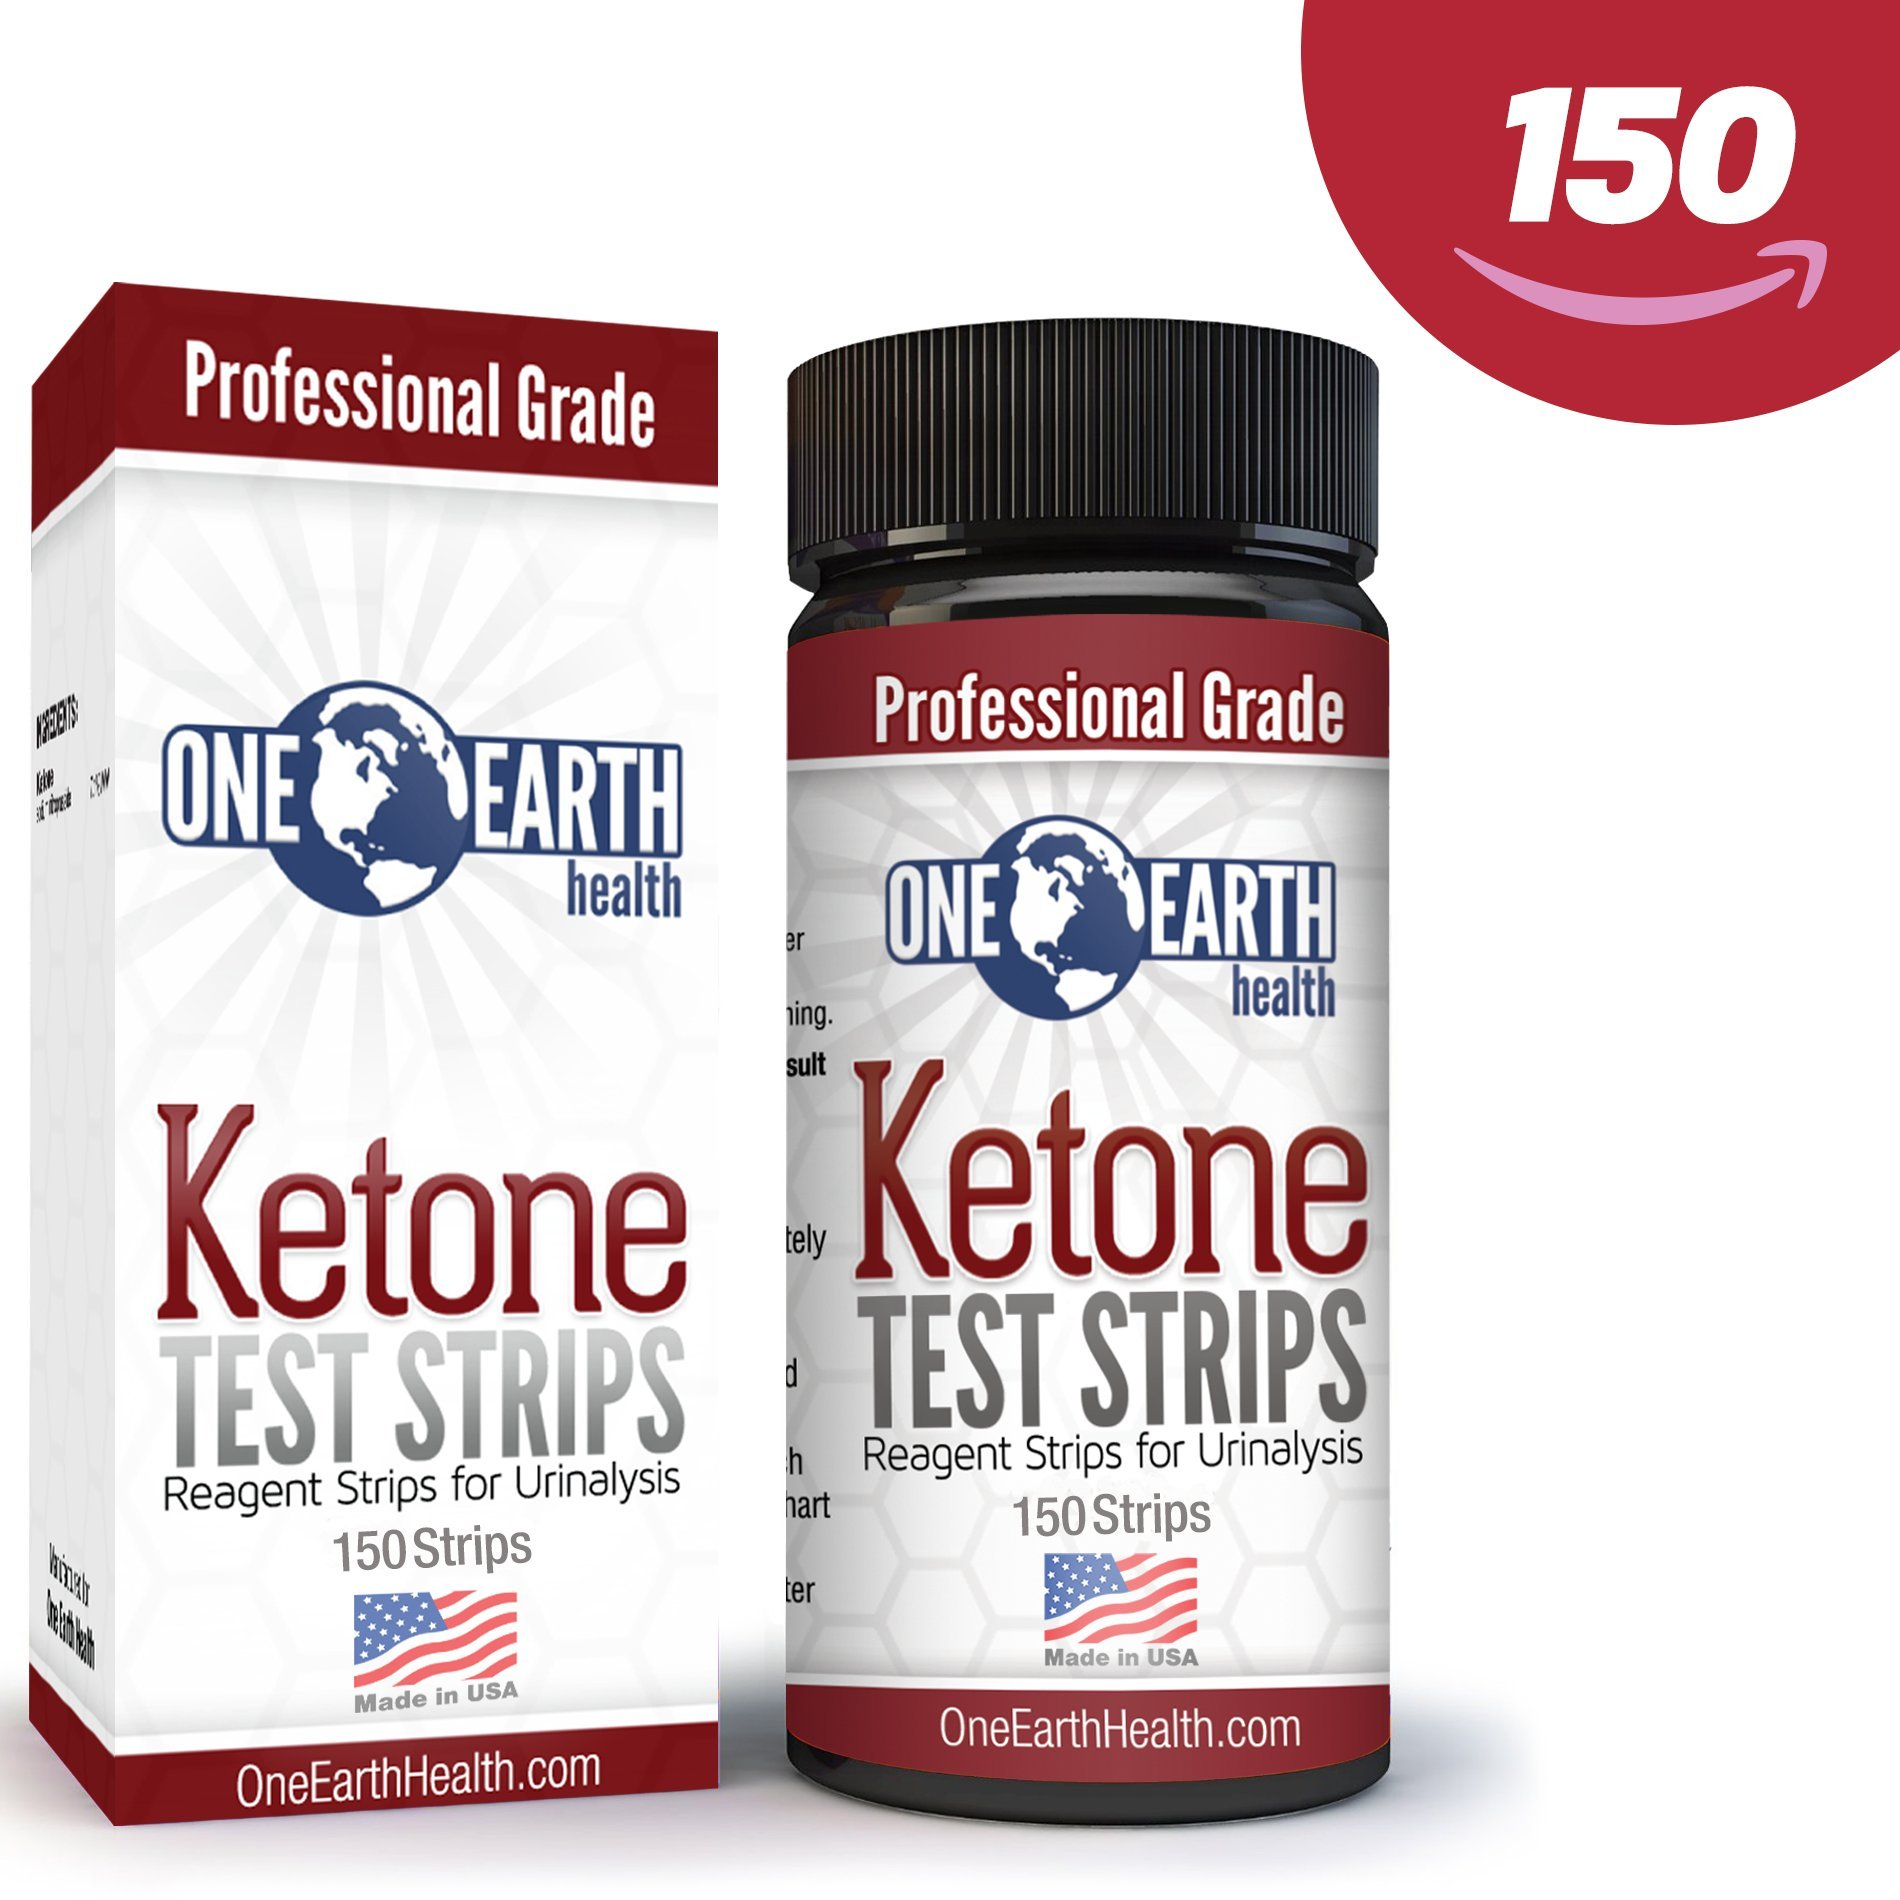 Ketone Strips (USA Made, 150 Count): Accurate Ketosis Urine Test Strips For Keto Diet, Diabetics and Ketogenic Measurement. Lose Weight With Confidence. Keto Ebook Emailed. Lifetime Guarantee